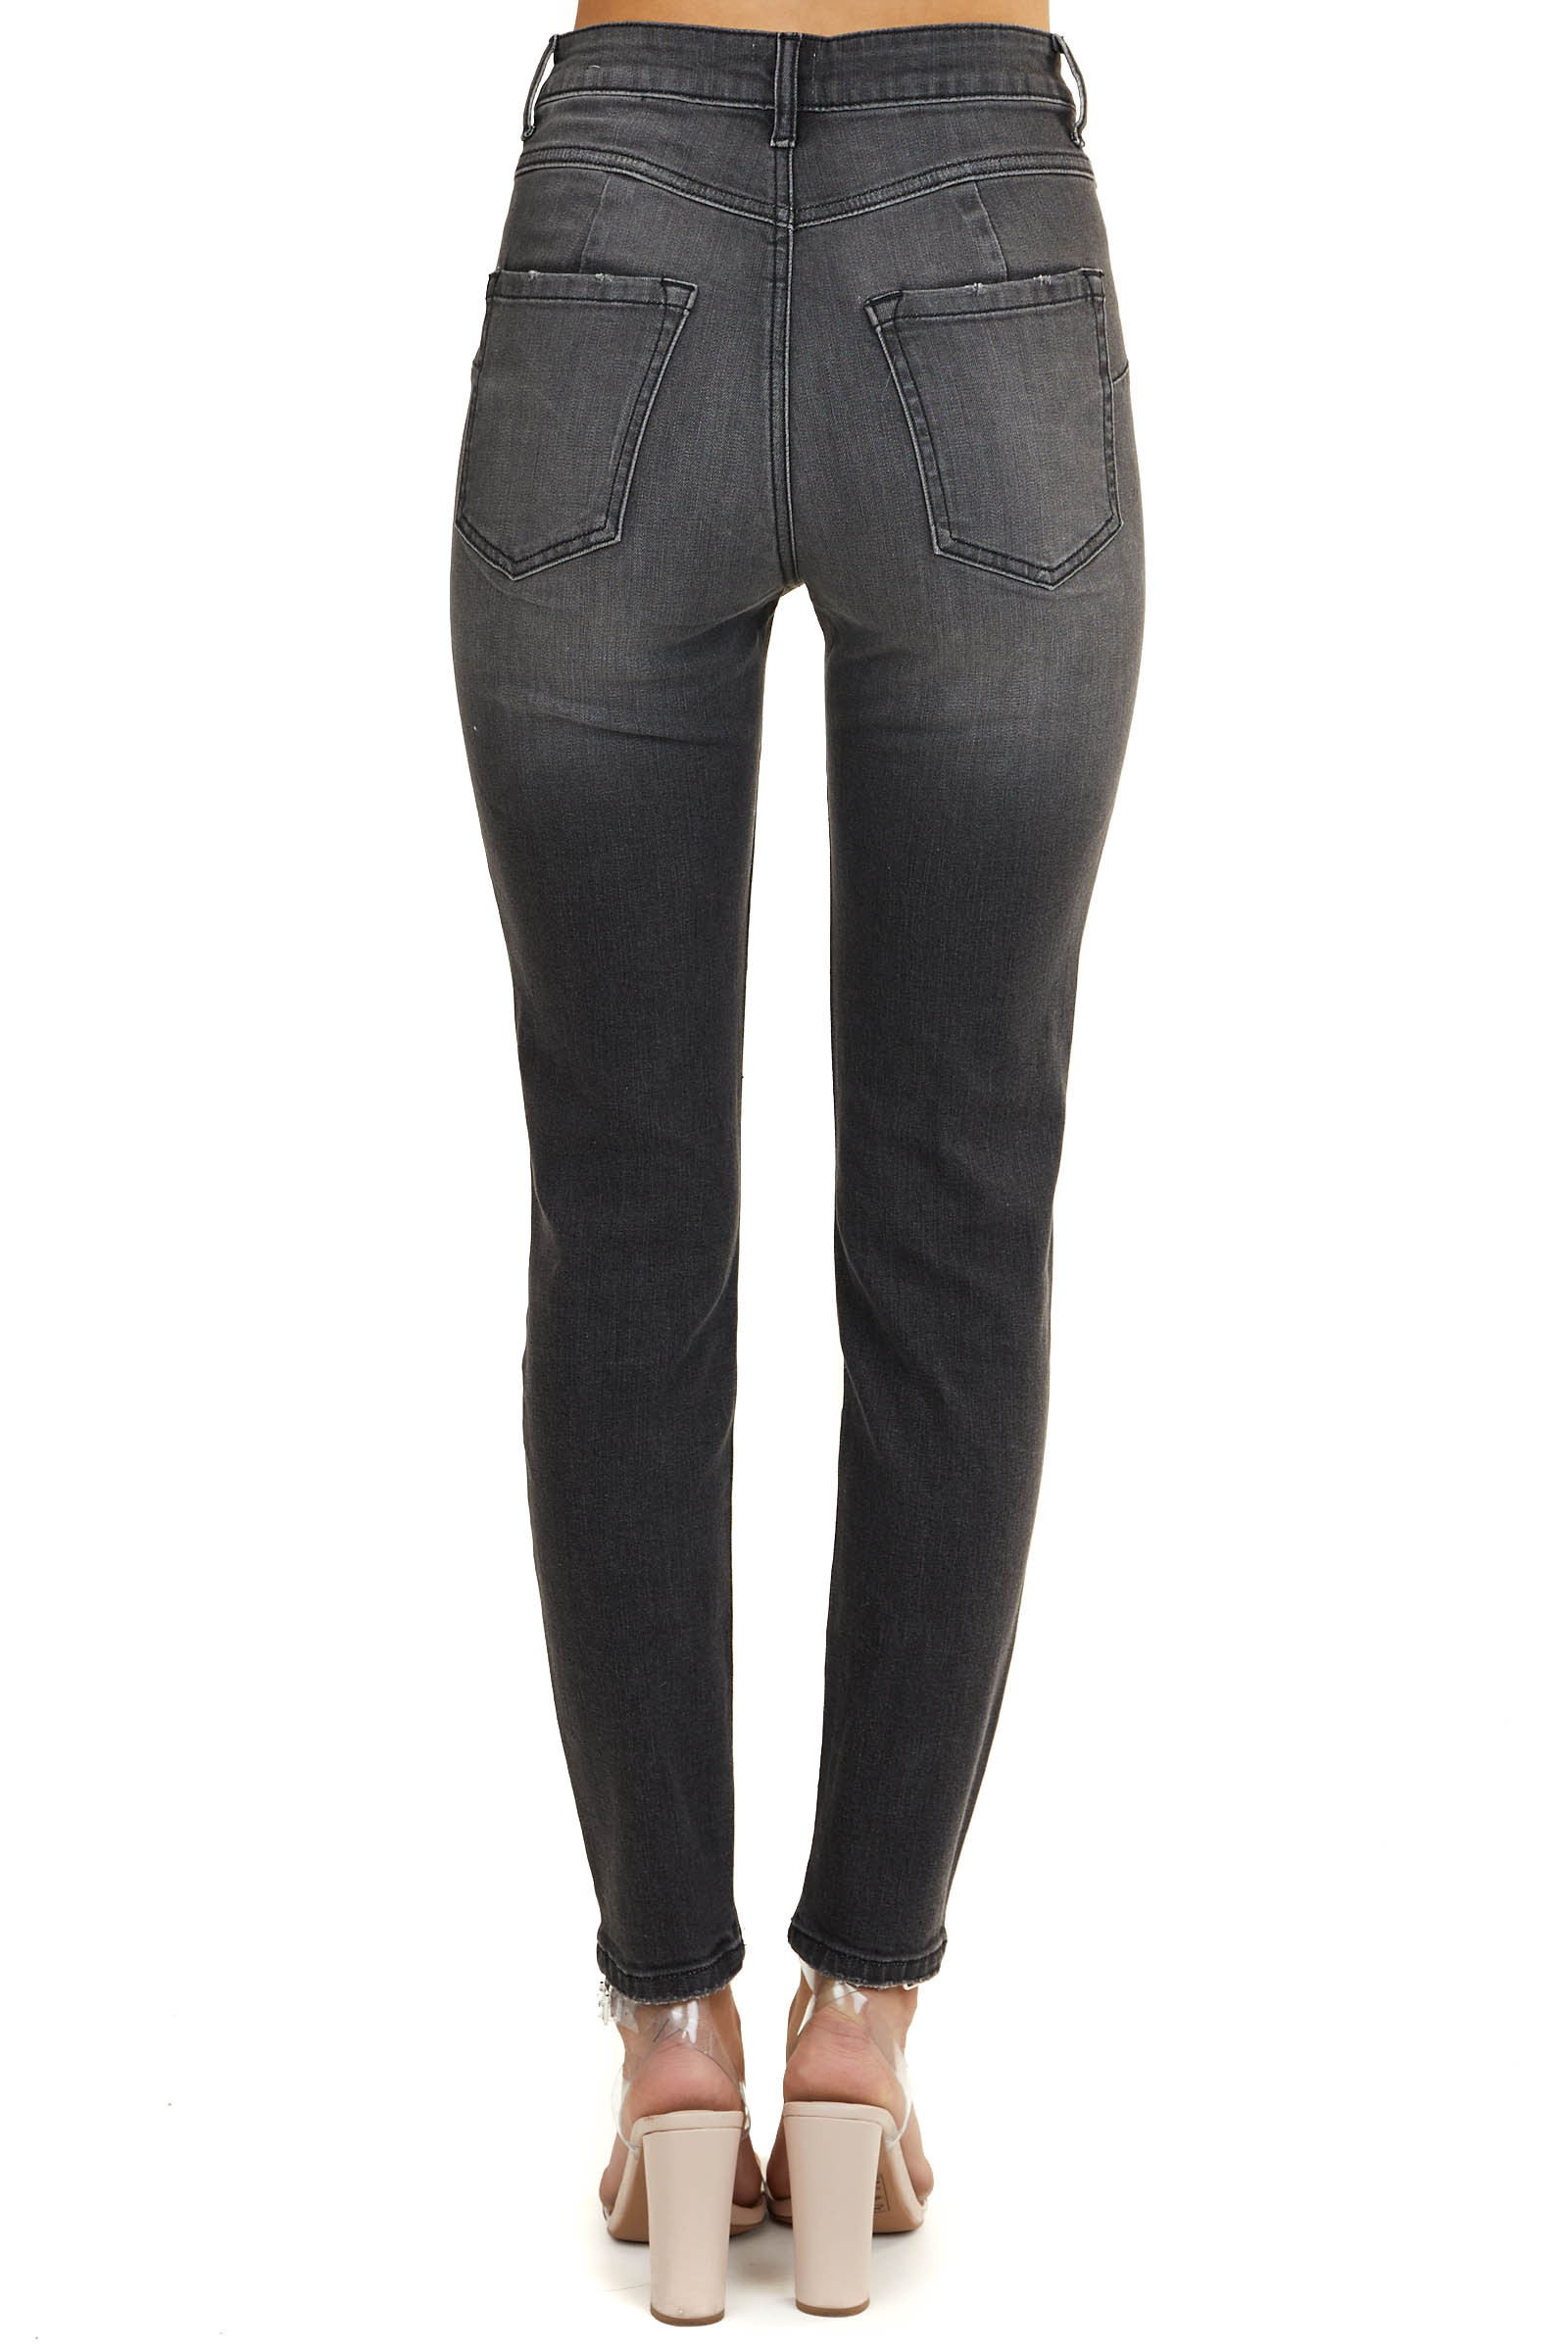 Faded Black High Rise Skinny Jeans with Button Up Front